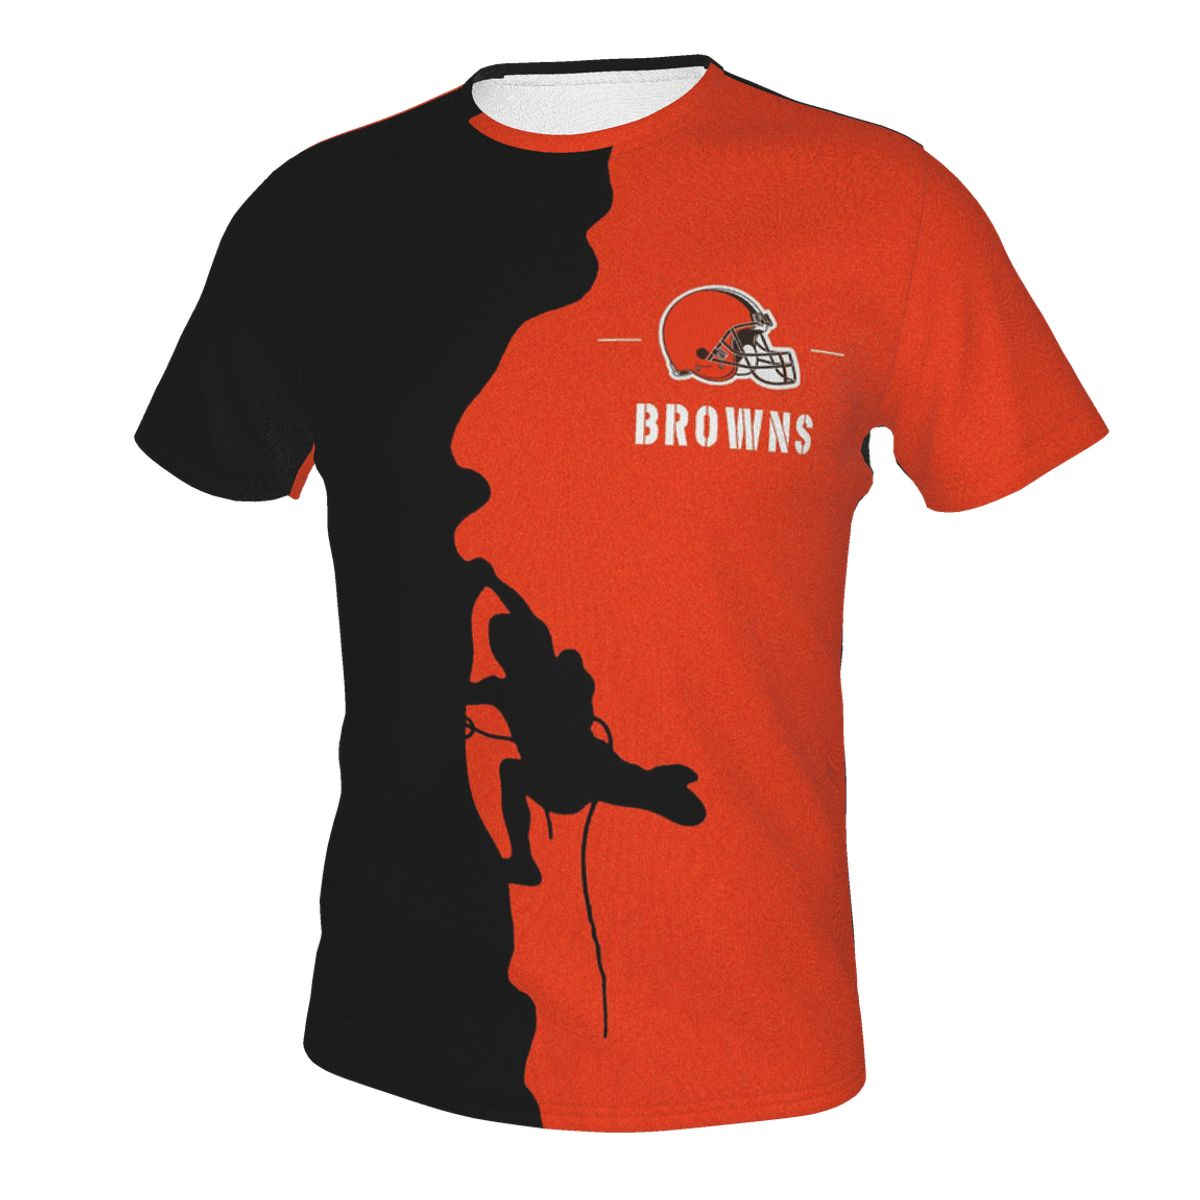 Climber Browns T-shirts For Men